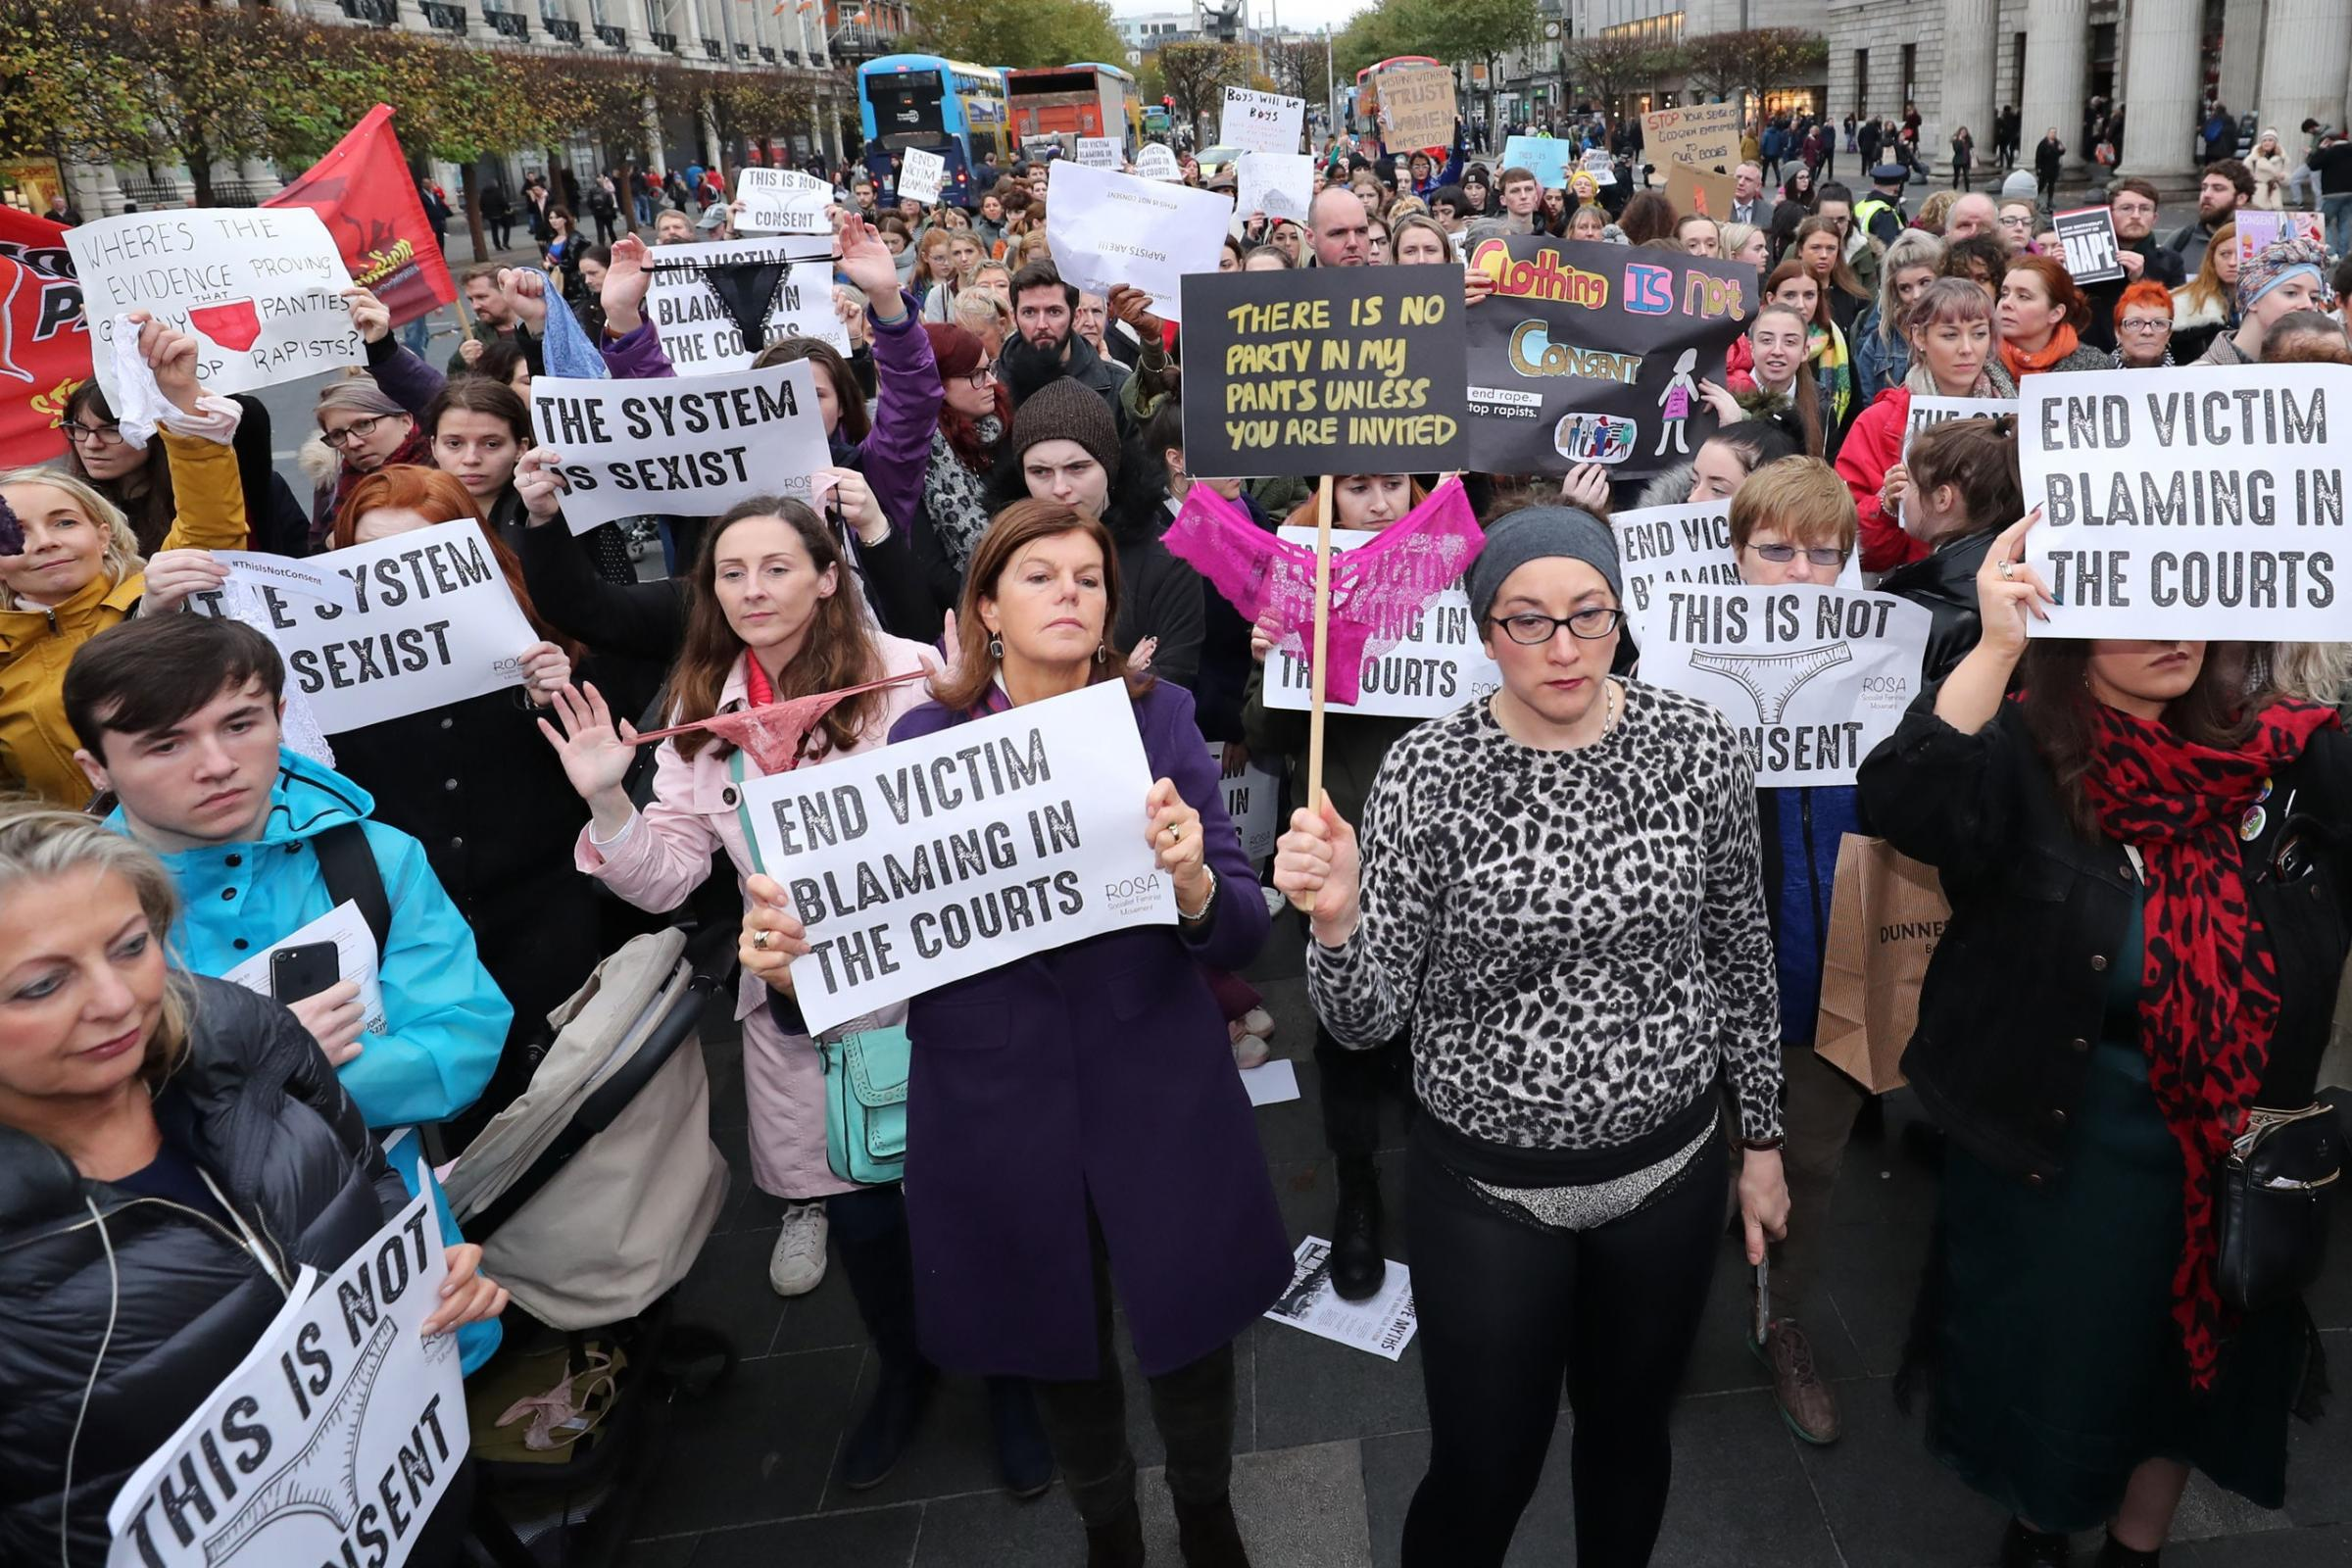 Hundreds join protest against rape trials in Ireland